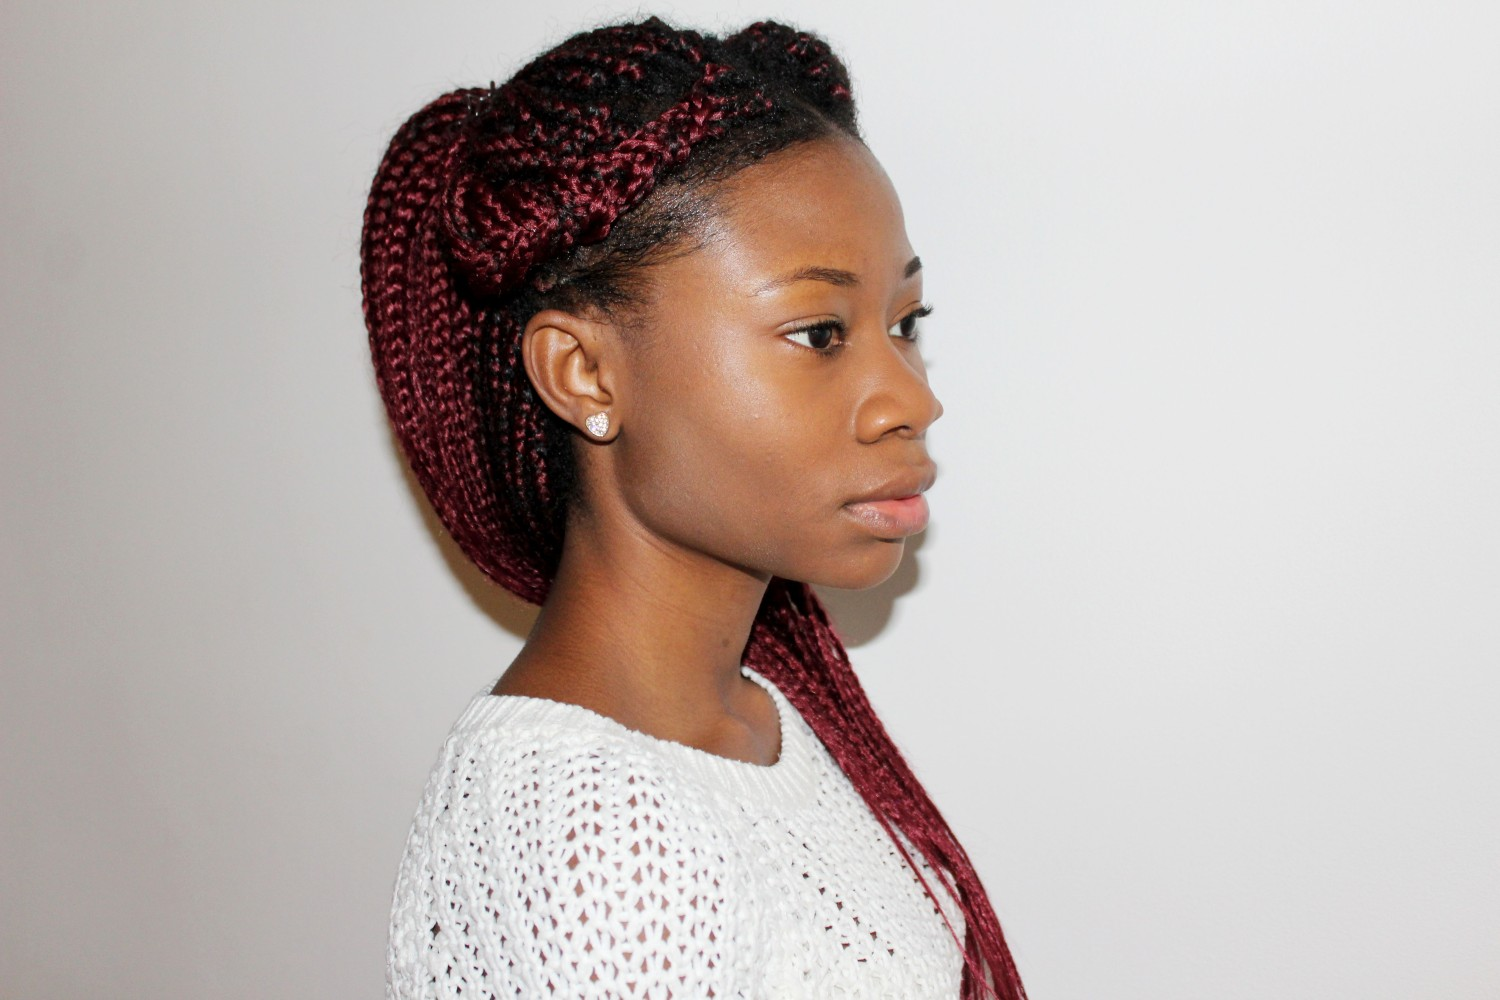 Dior, Luxury, Beauty, Petite, Blogger, Black, Beauty Blogger, Braids, Burgundy braids, Flawless Skin,